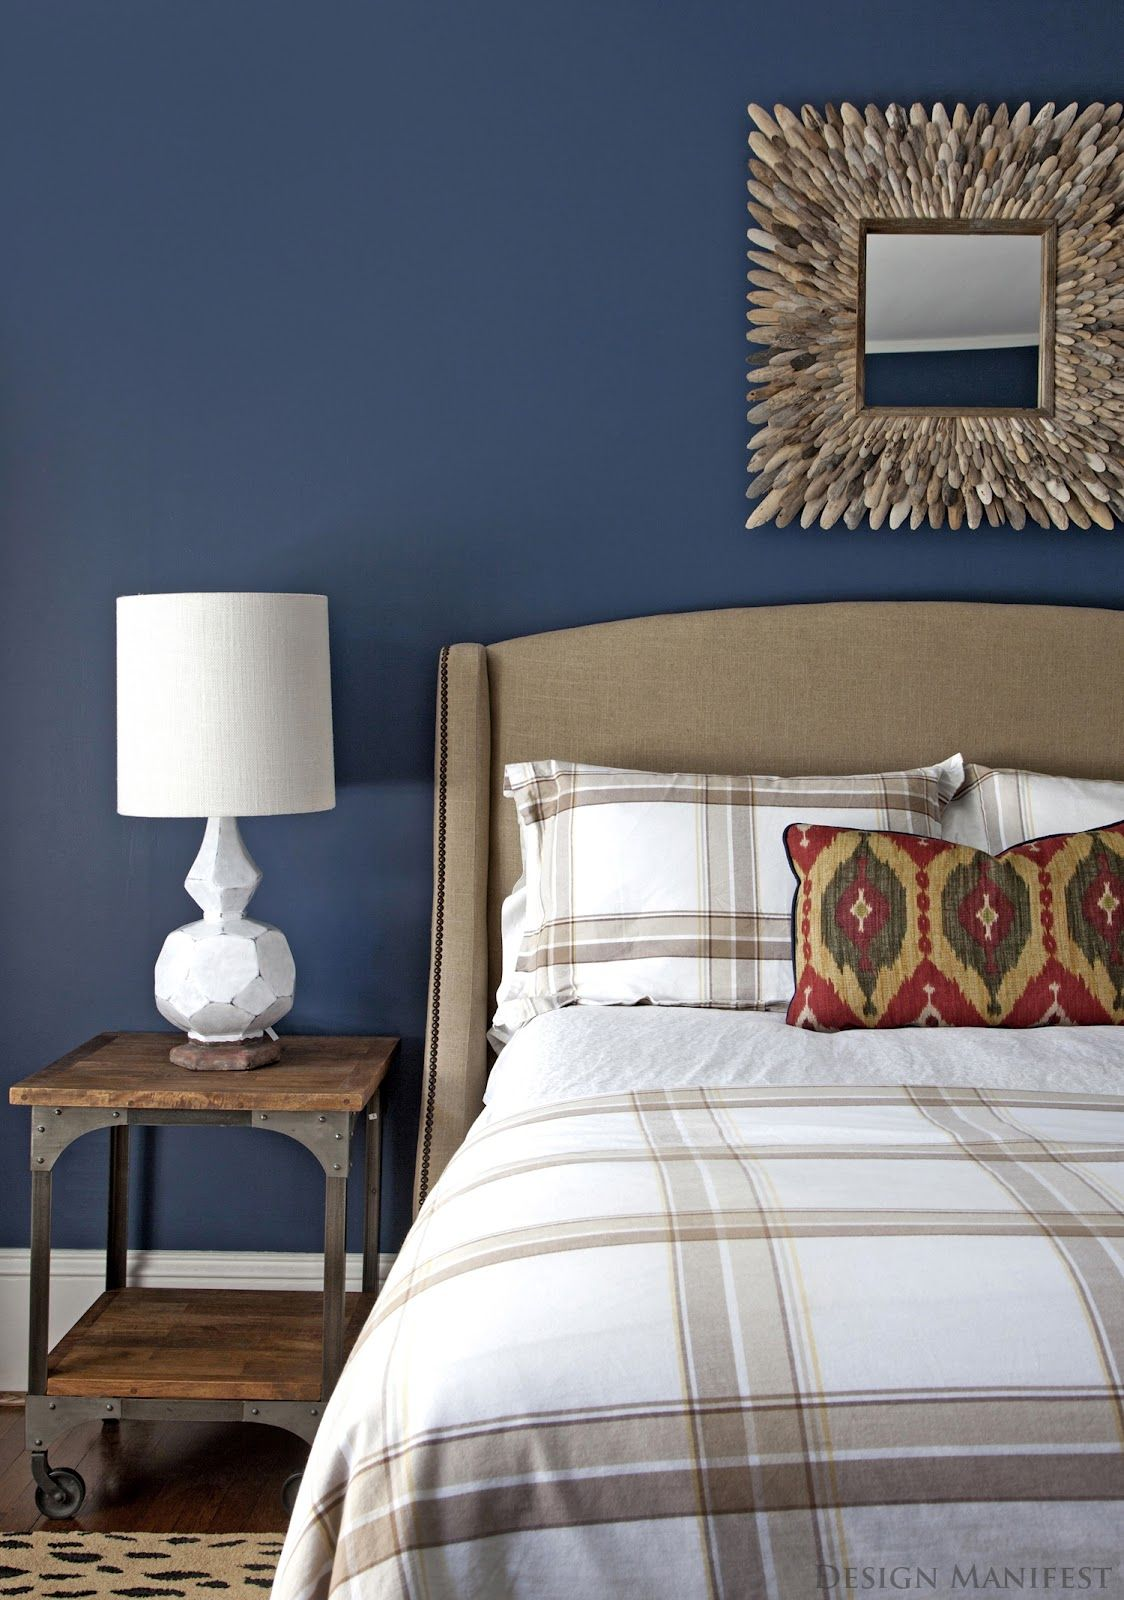 15 Beautiful Dark Blue Wall Design Ideas | Blue bedroom ...